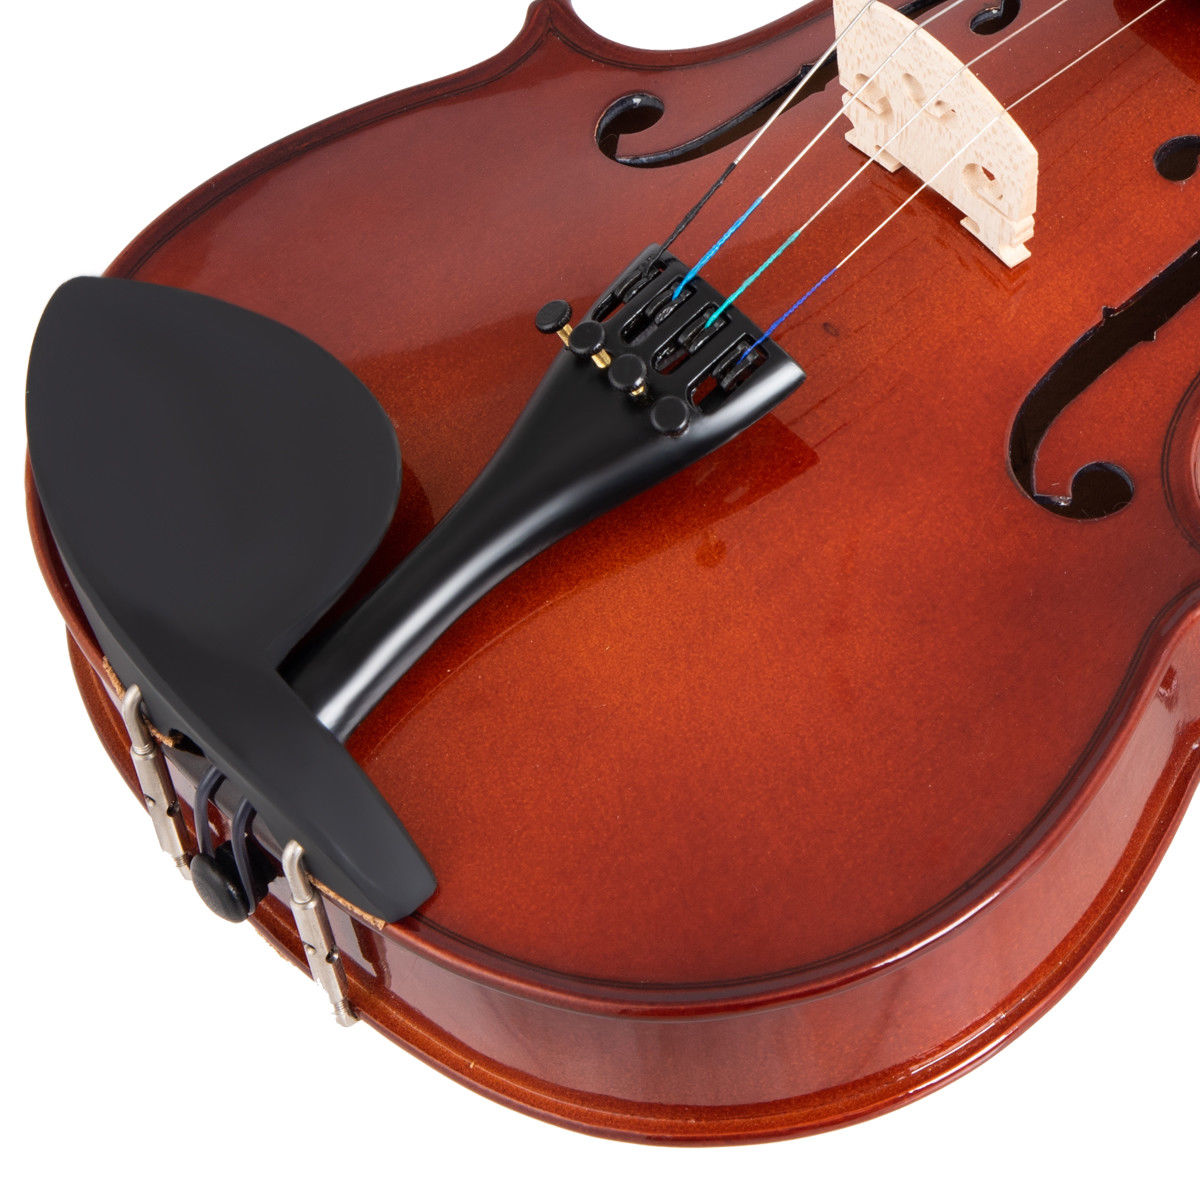 Full Size 4/4 Violin Solid Wood w/ Hard Case Bow Rosin Bridge Student Starter - image 4 de 10